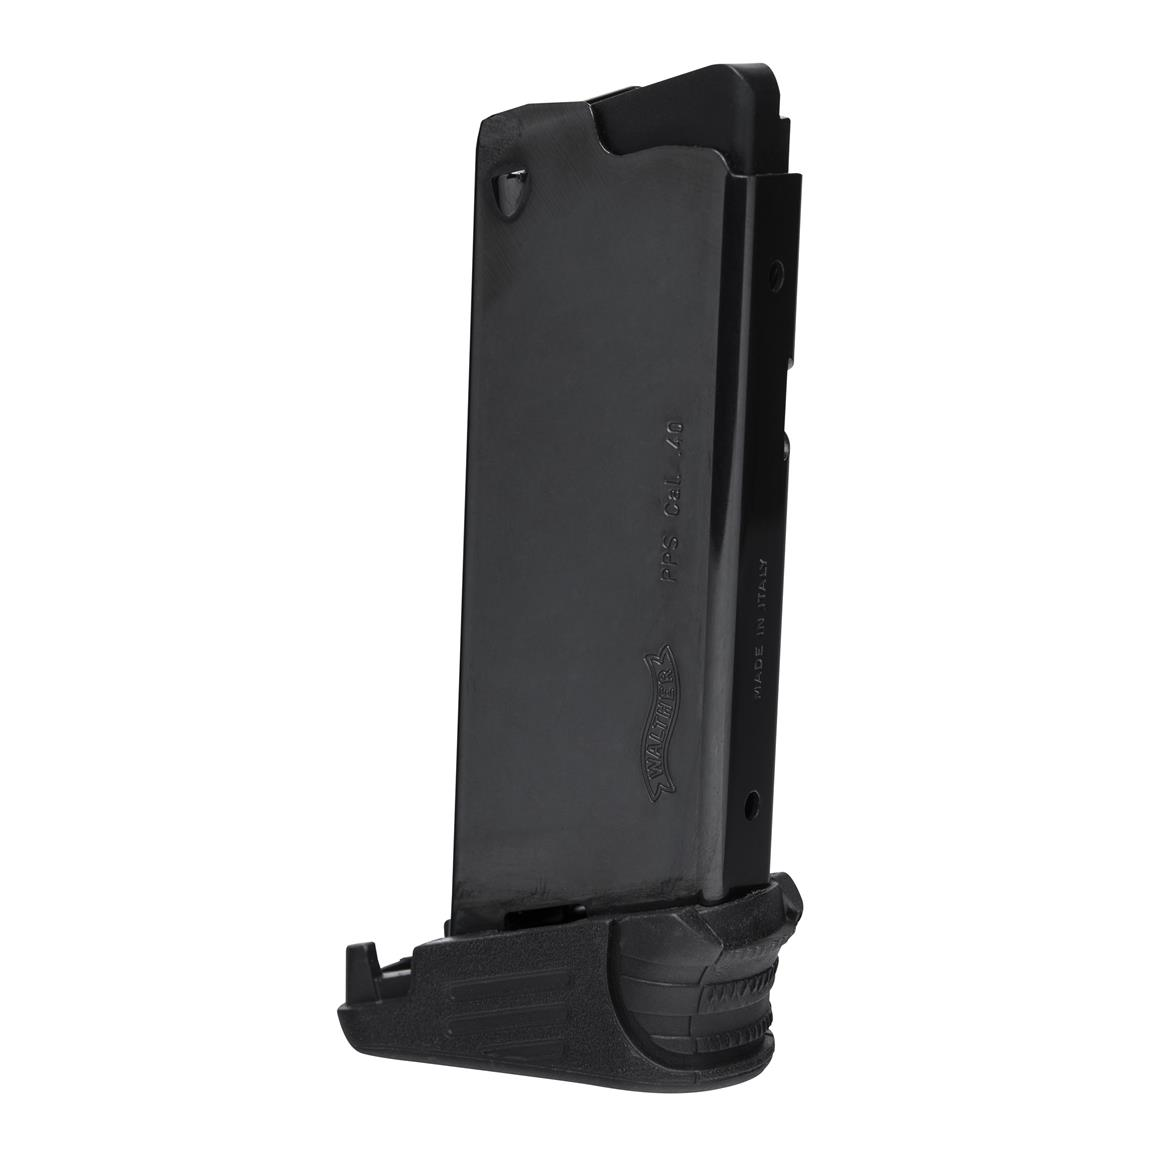 Walther PPS .40 Smith & Wesson 6 Round Magazine